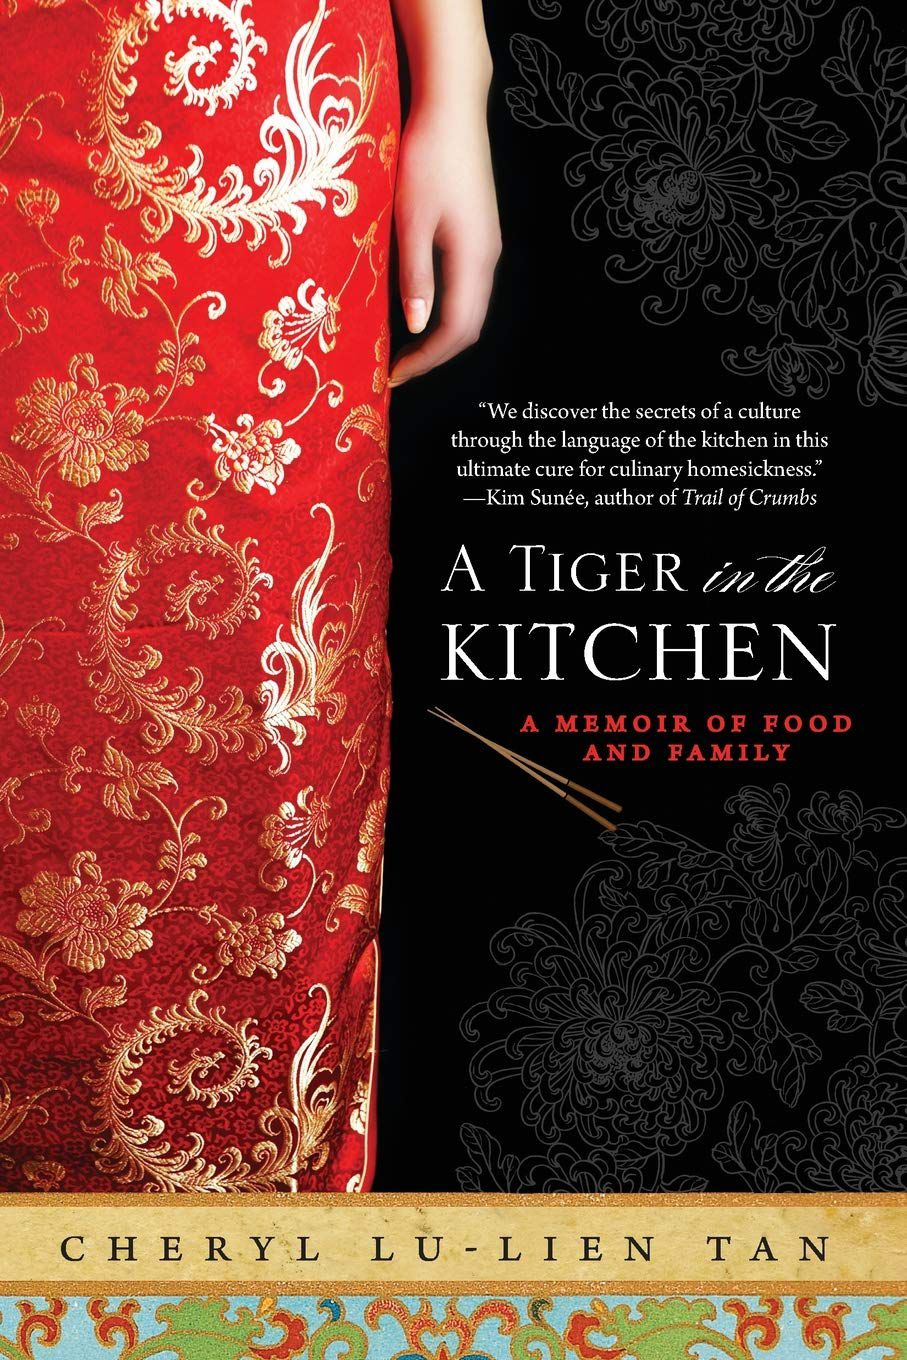 A Tiger in the Kitchen : A Memoir of Food and Family by Cheryl Lu-Lien Tan book cover